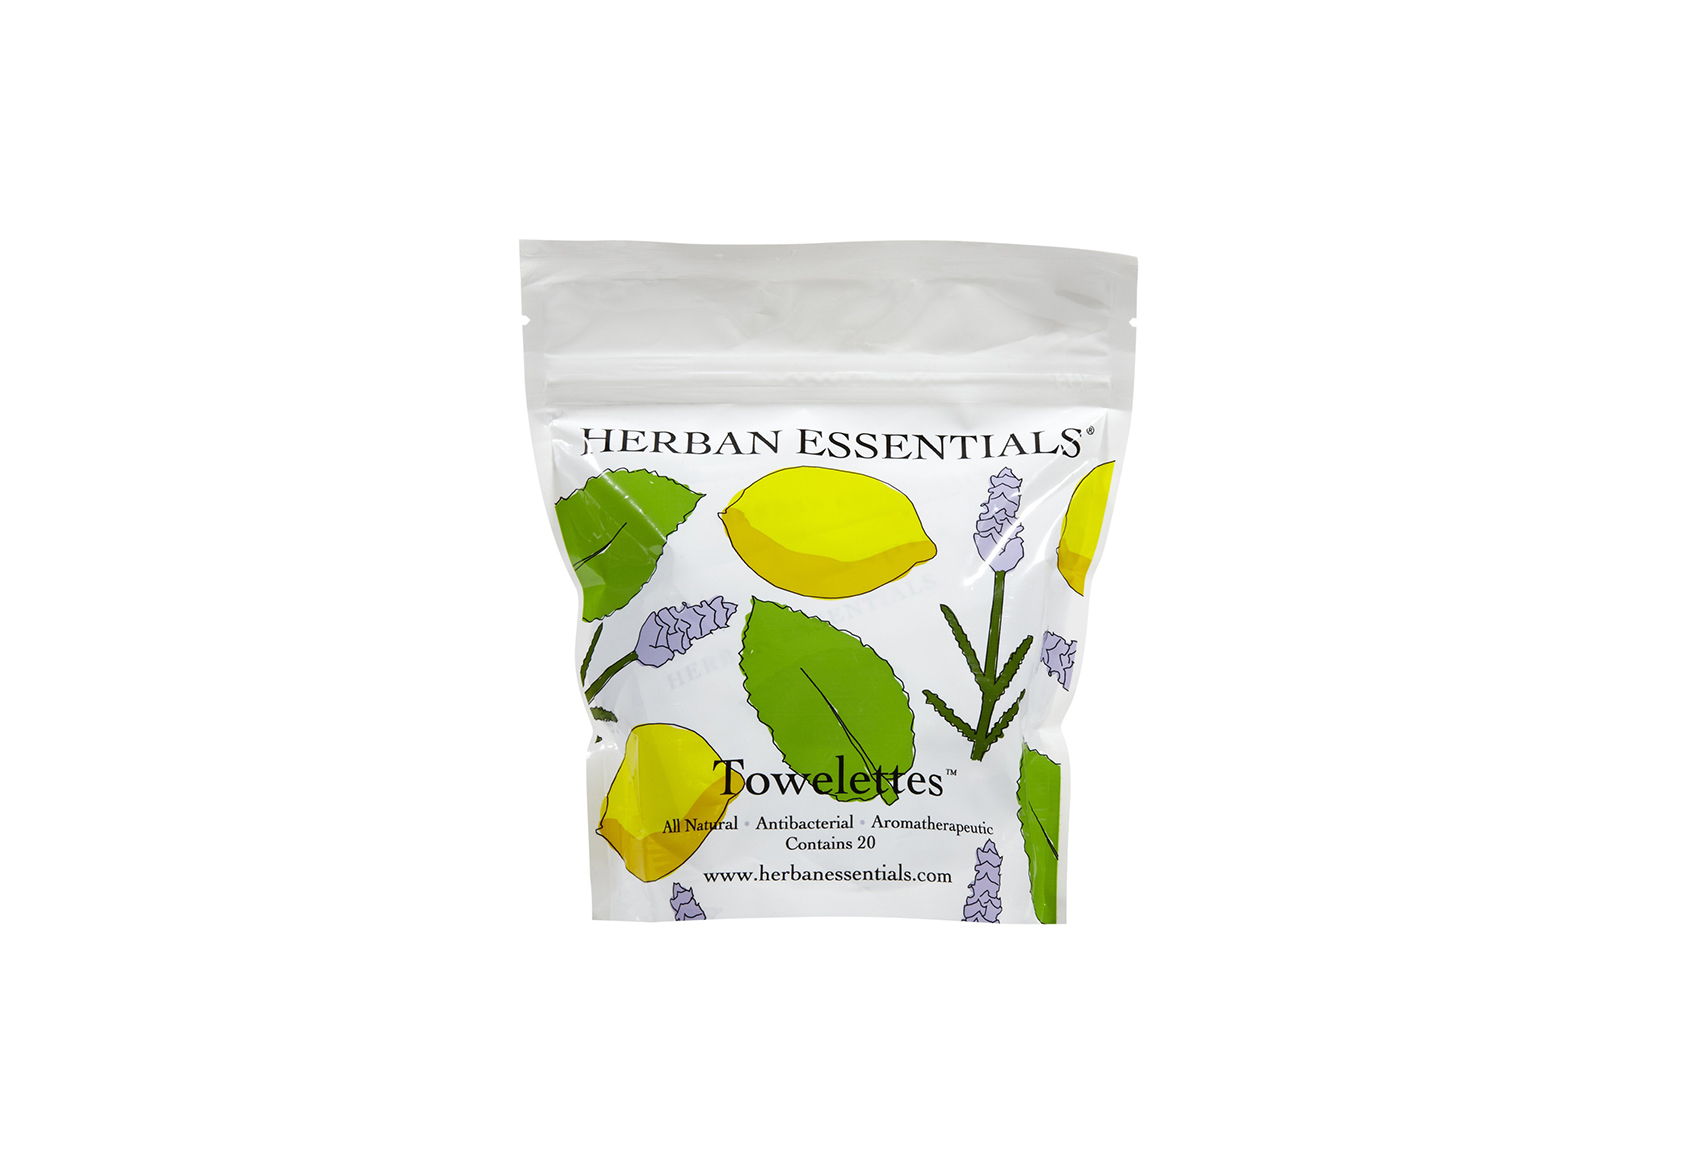 herban-essentials-essential-oil-towelettes